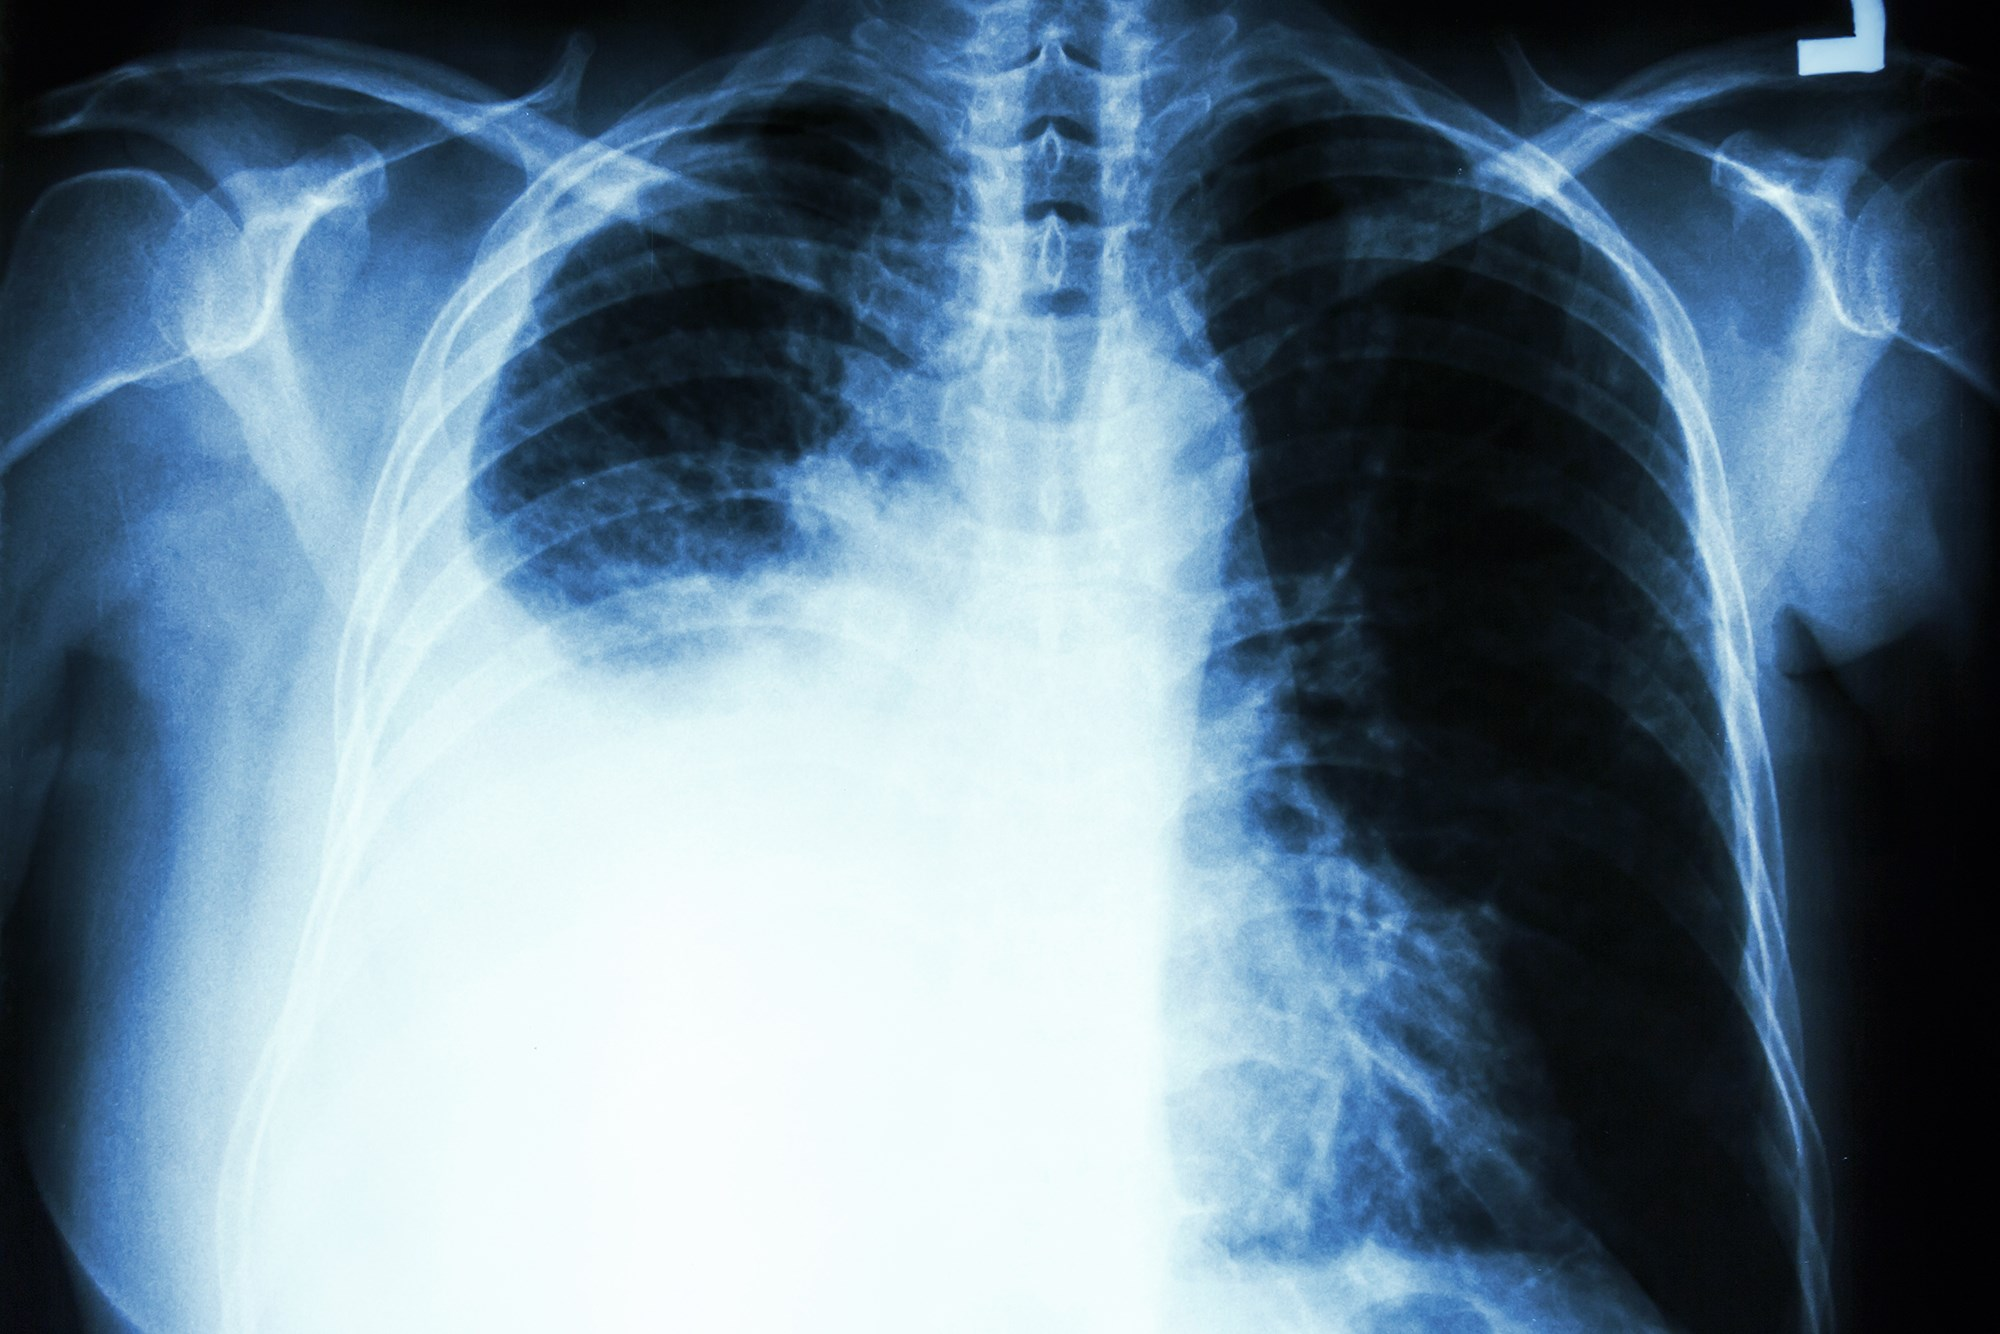 Malignant Pleural Effusion Interventions: What Matters Most to the Patient?